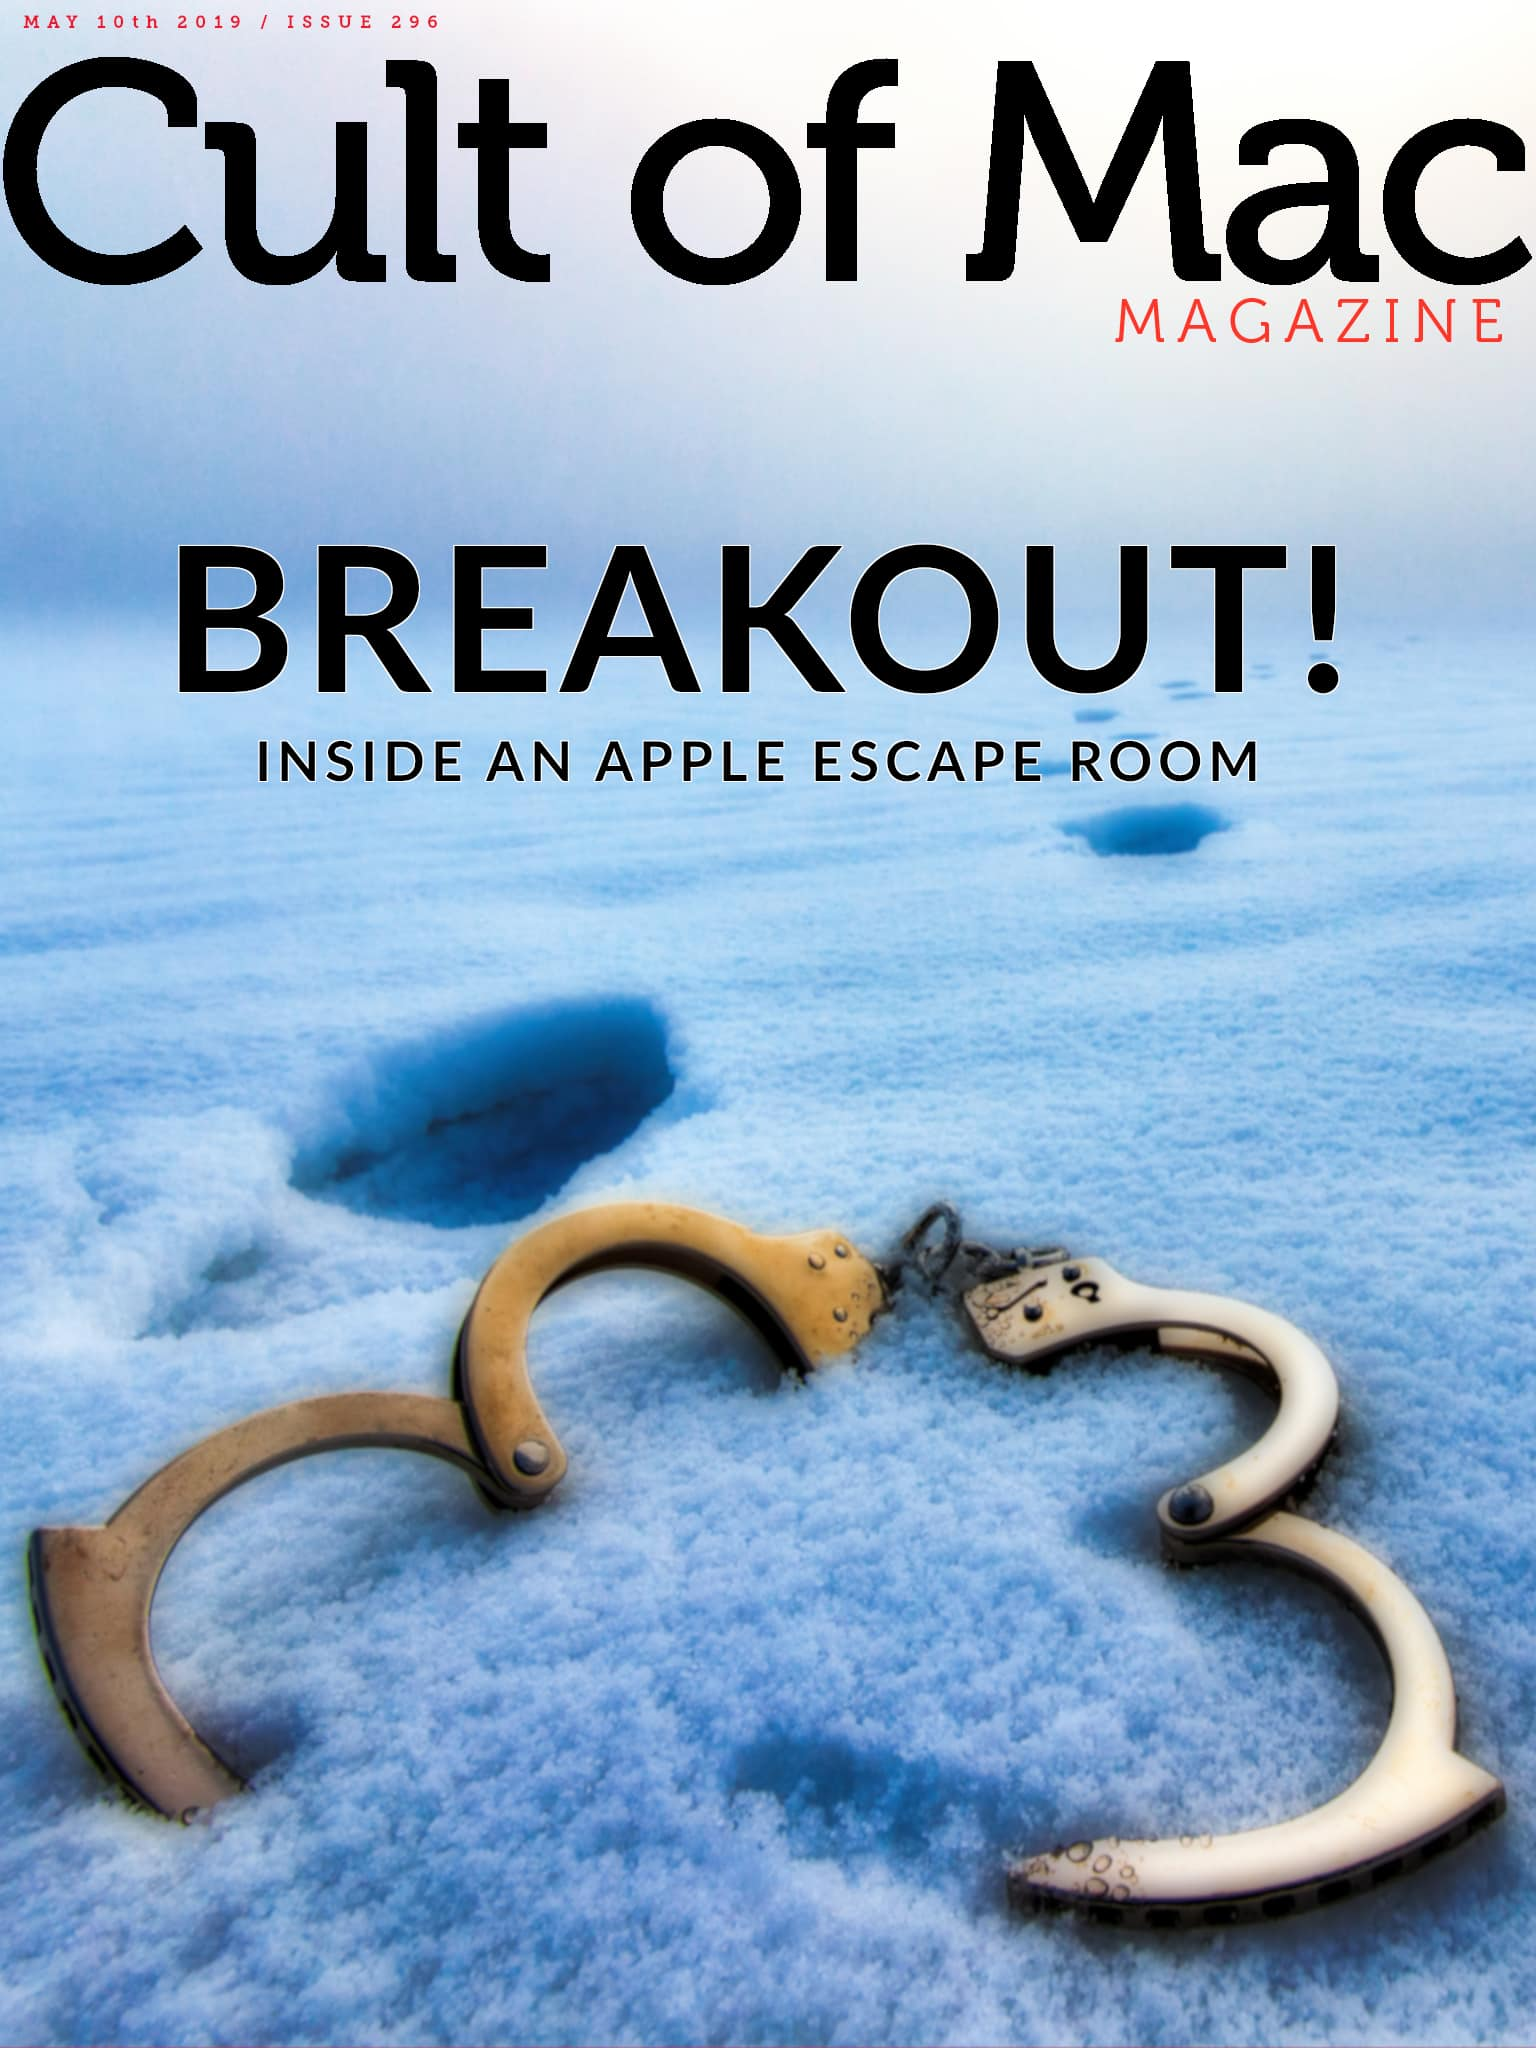 An unusual Apple-themed escape room is set to inject some fun into this year's AltConf during WWDC.